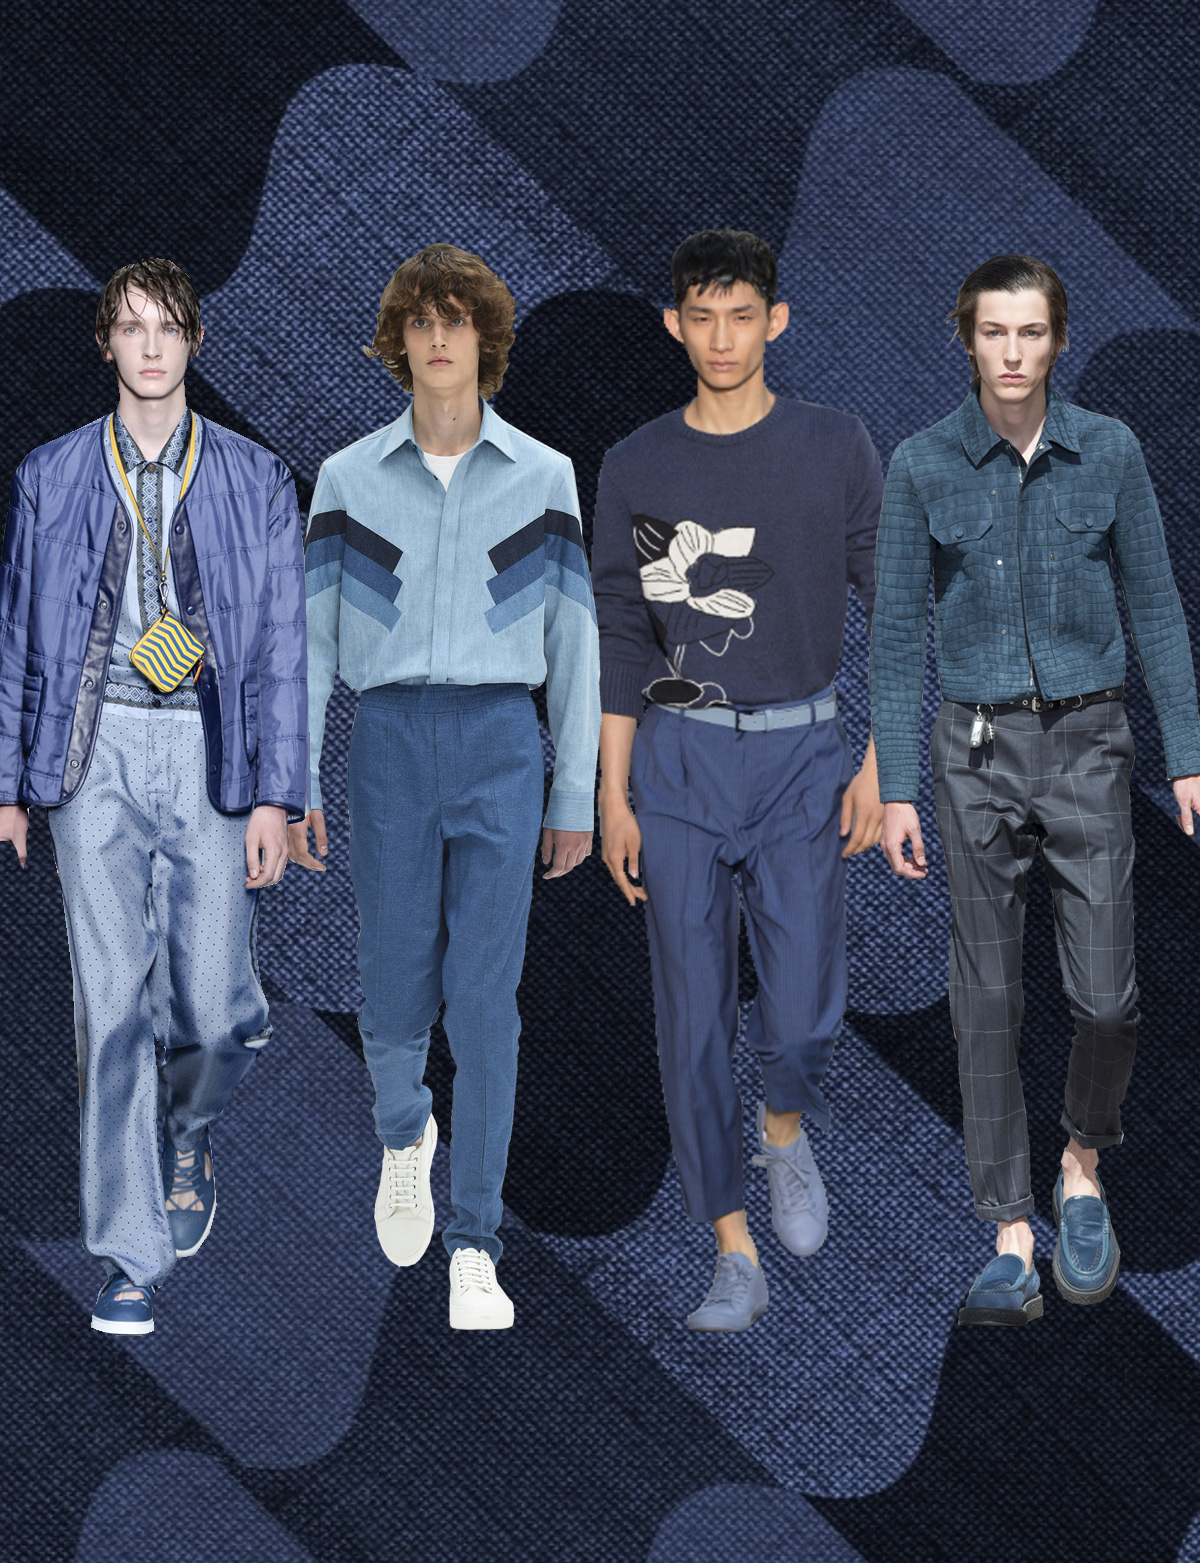 ss17, trend, forecasting, color, color forcast, print, silkscreen, fashion, womenswear, dress, pants, spring, summer, party, merchandising, knit, stripes, blue, color block, chambray, navy, aqua